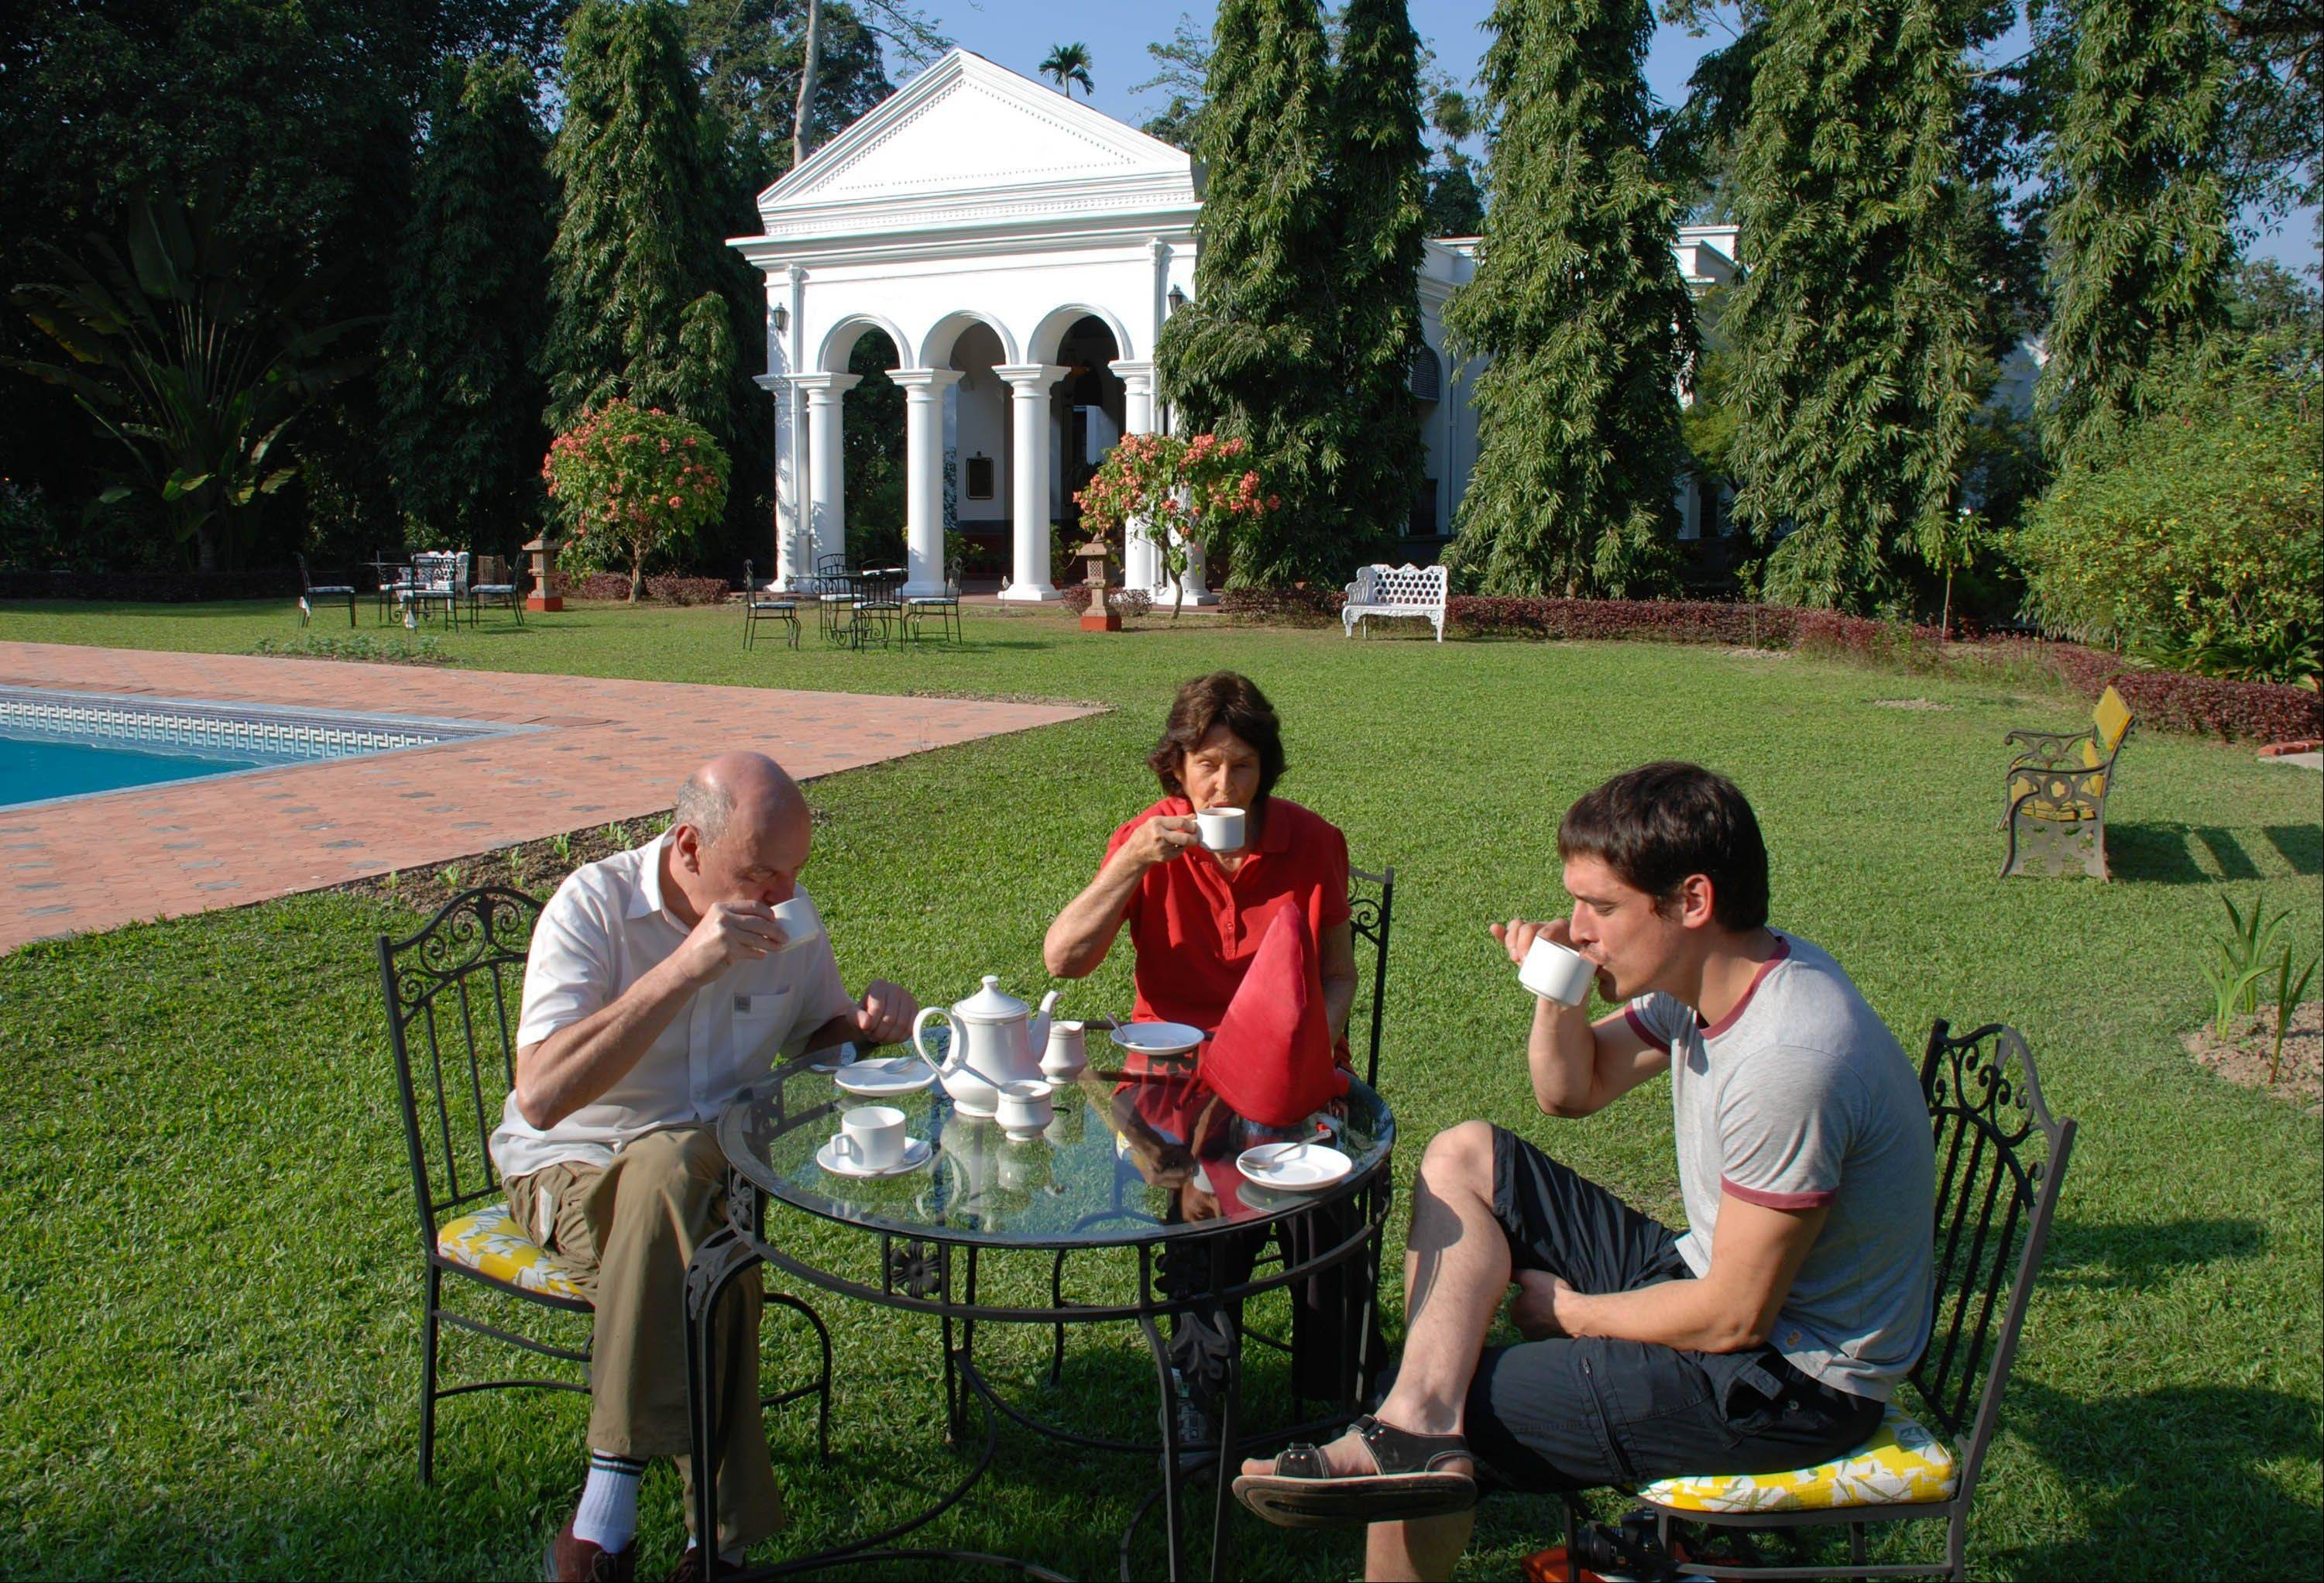 People enjoy afternoon tea, a heritage from British colonial days, on the lawn of Thengal Manor in Jorhat, India.